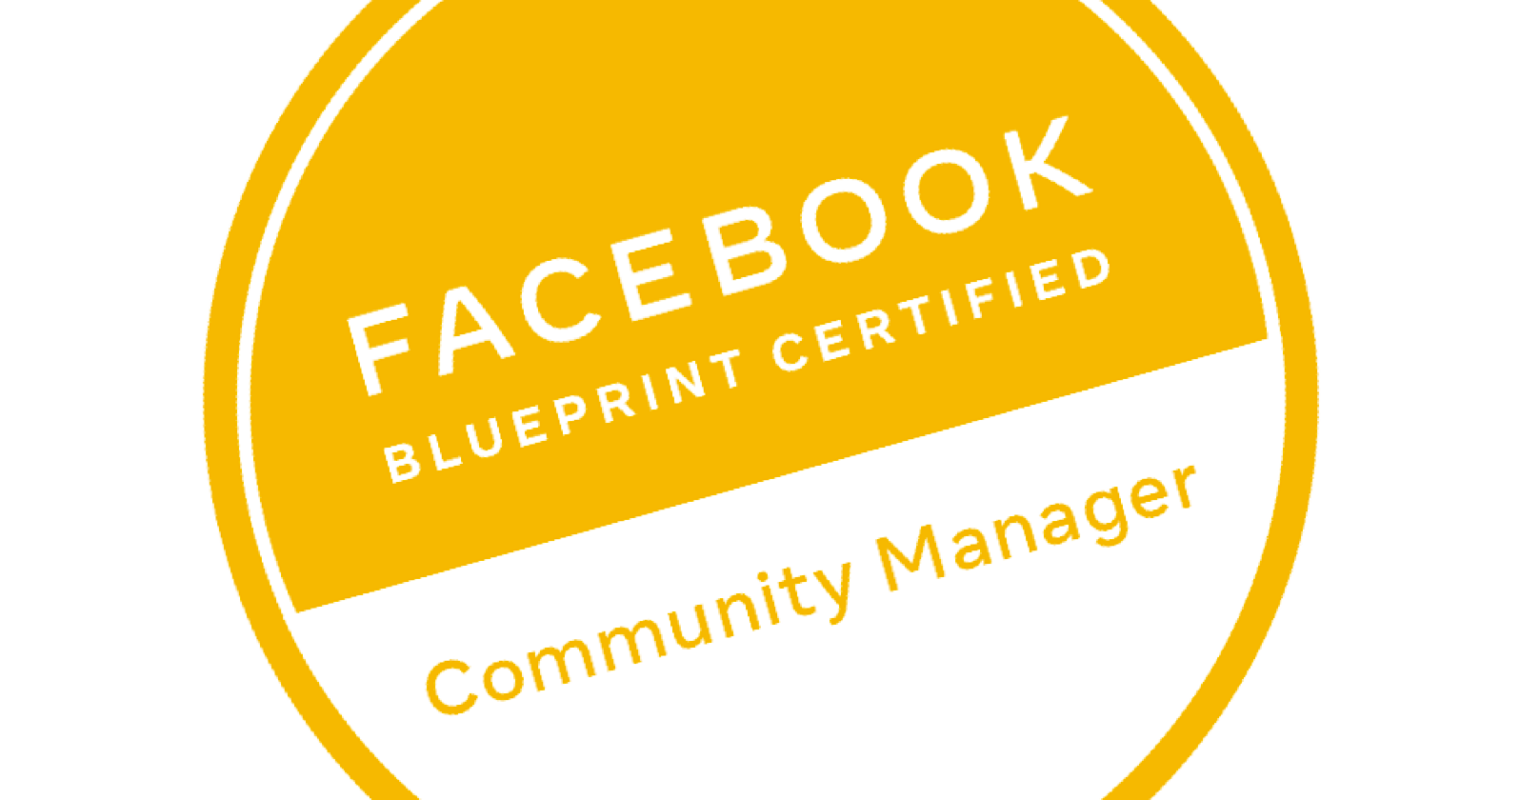 Facebook Community Manager Certification Program